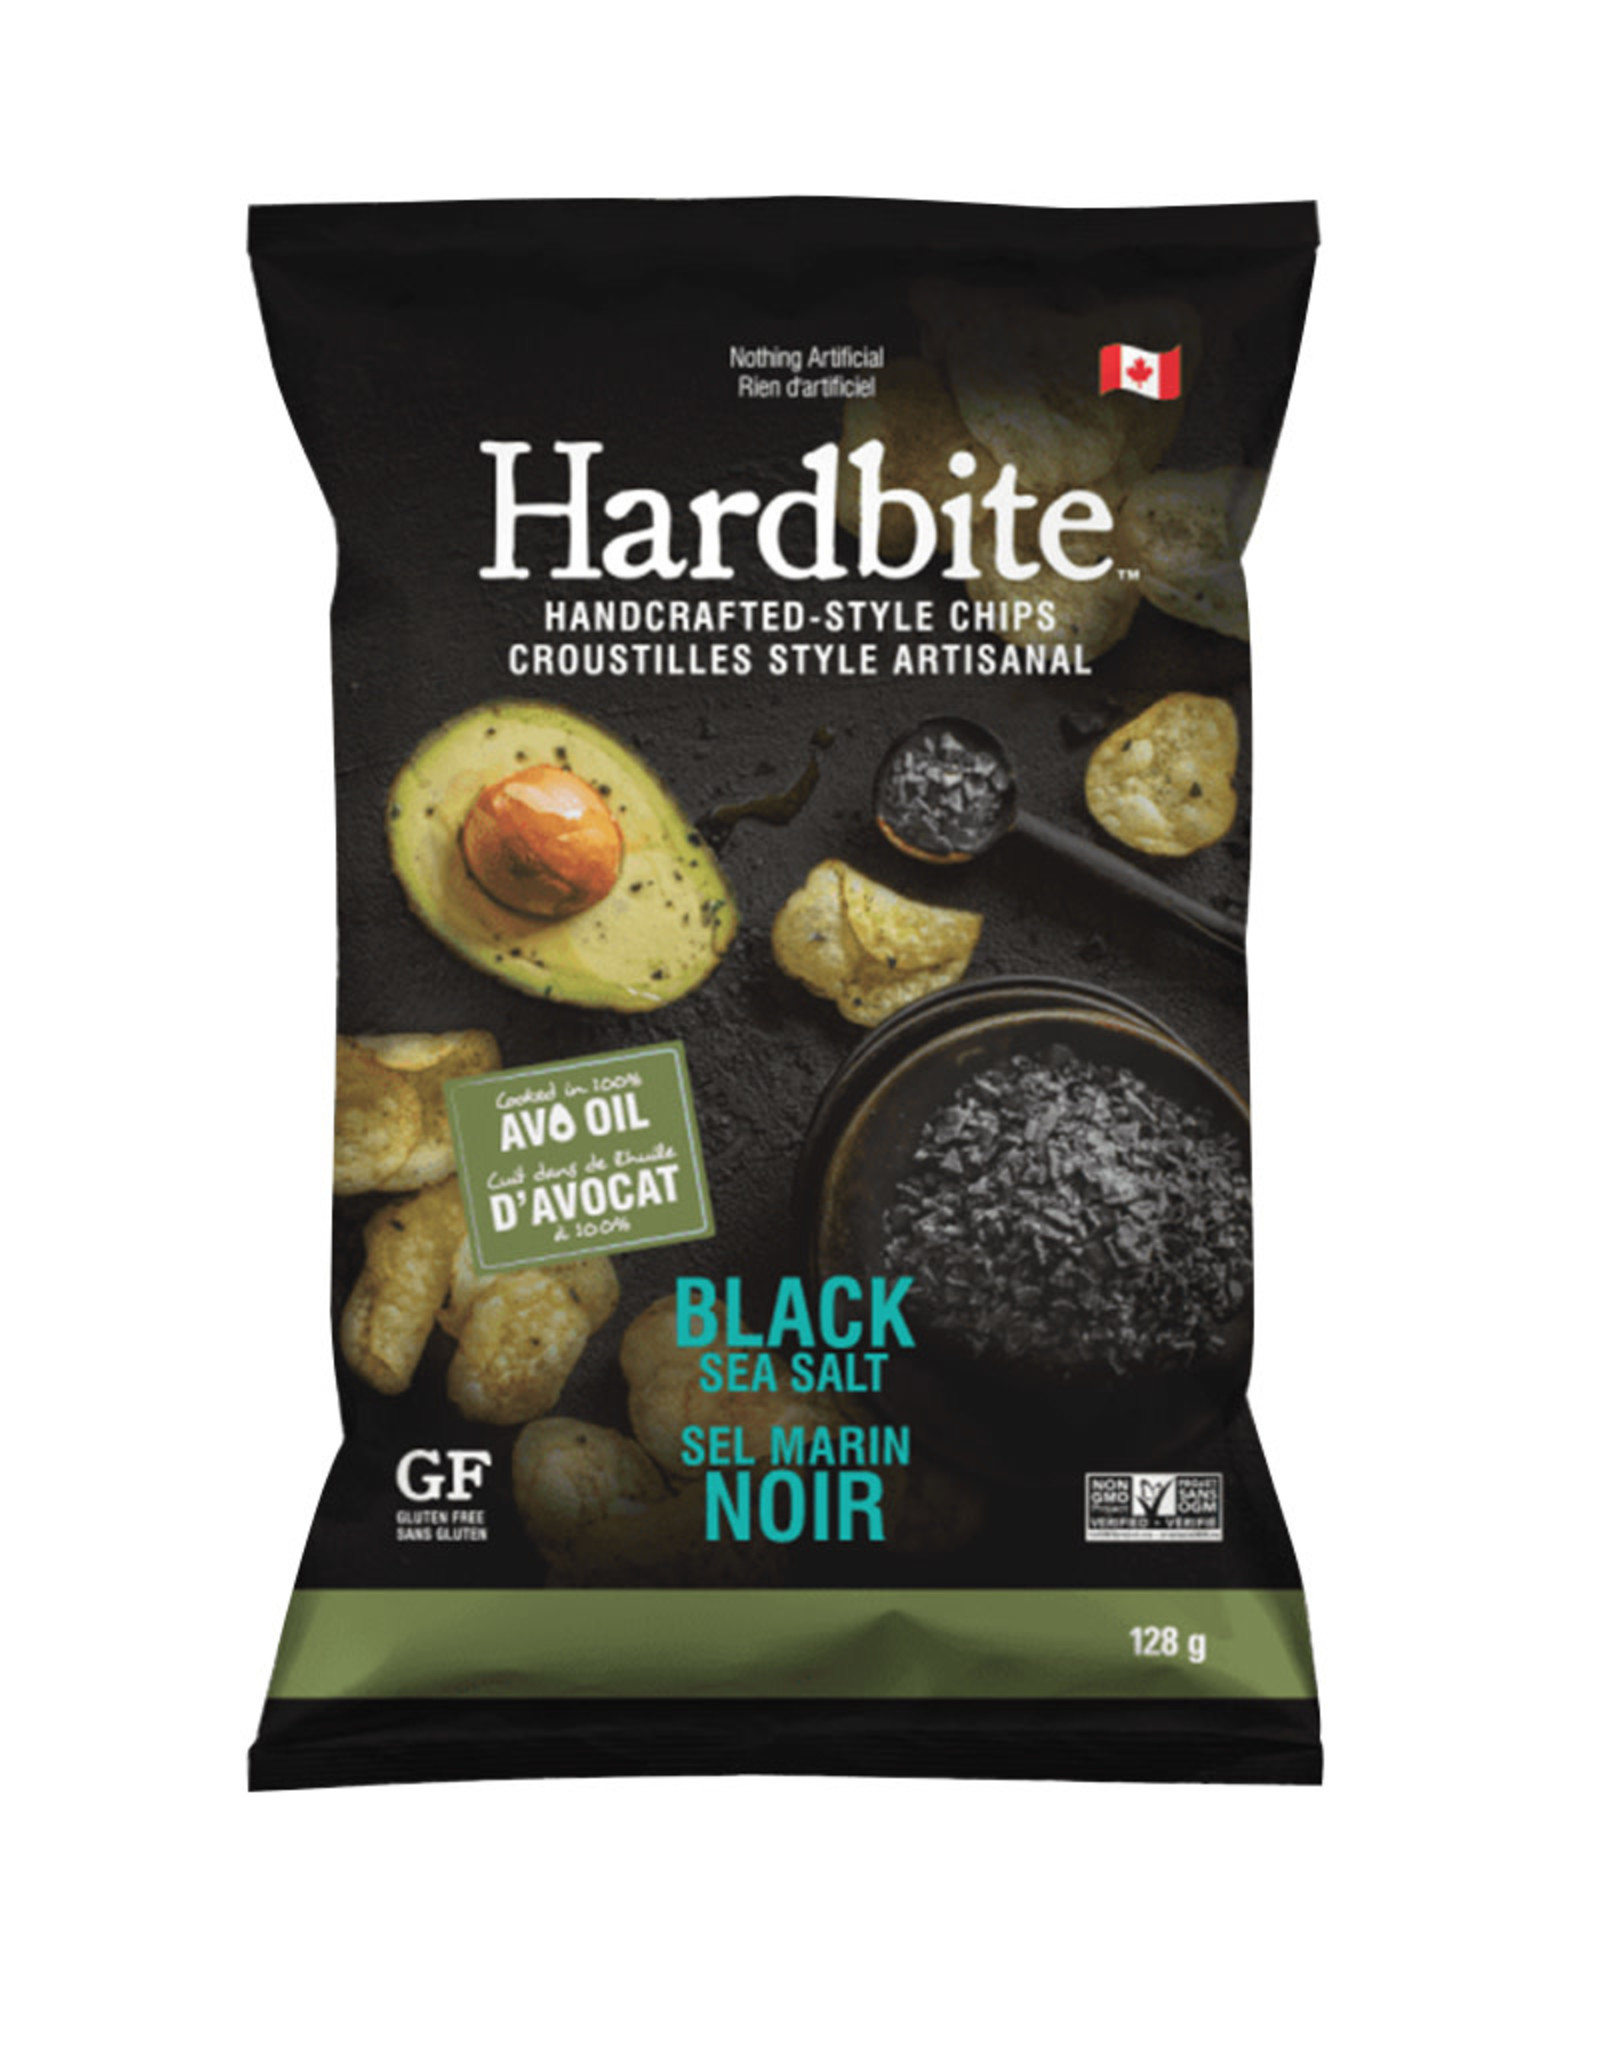 Hardbite Hardbite - Chips, Black Sea Salt with Avocado Oil (128g)